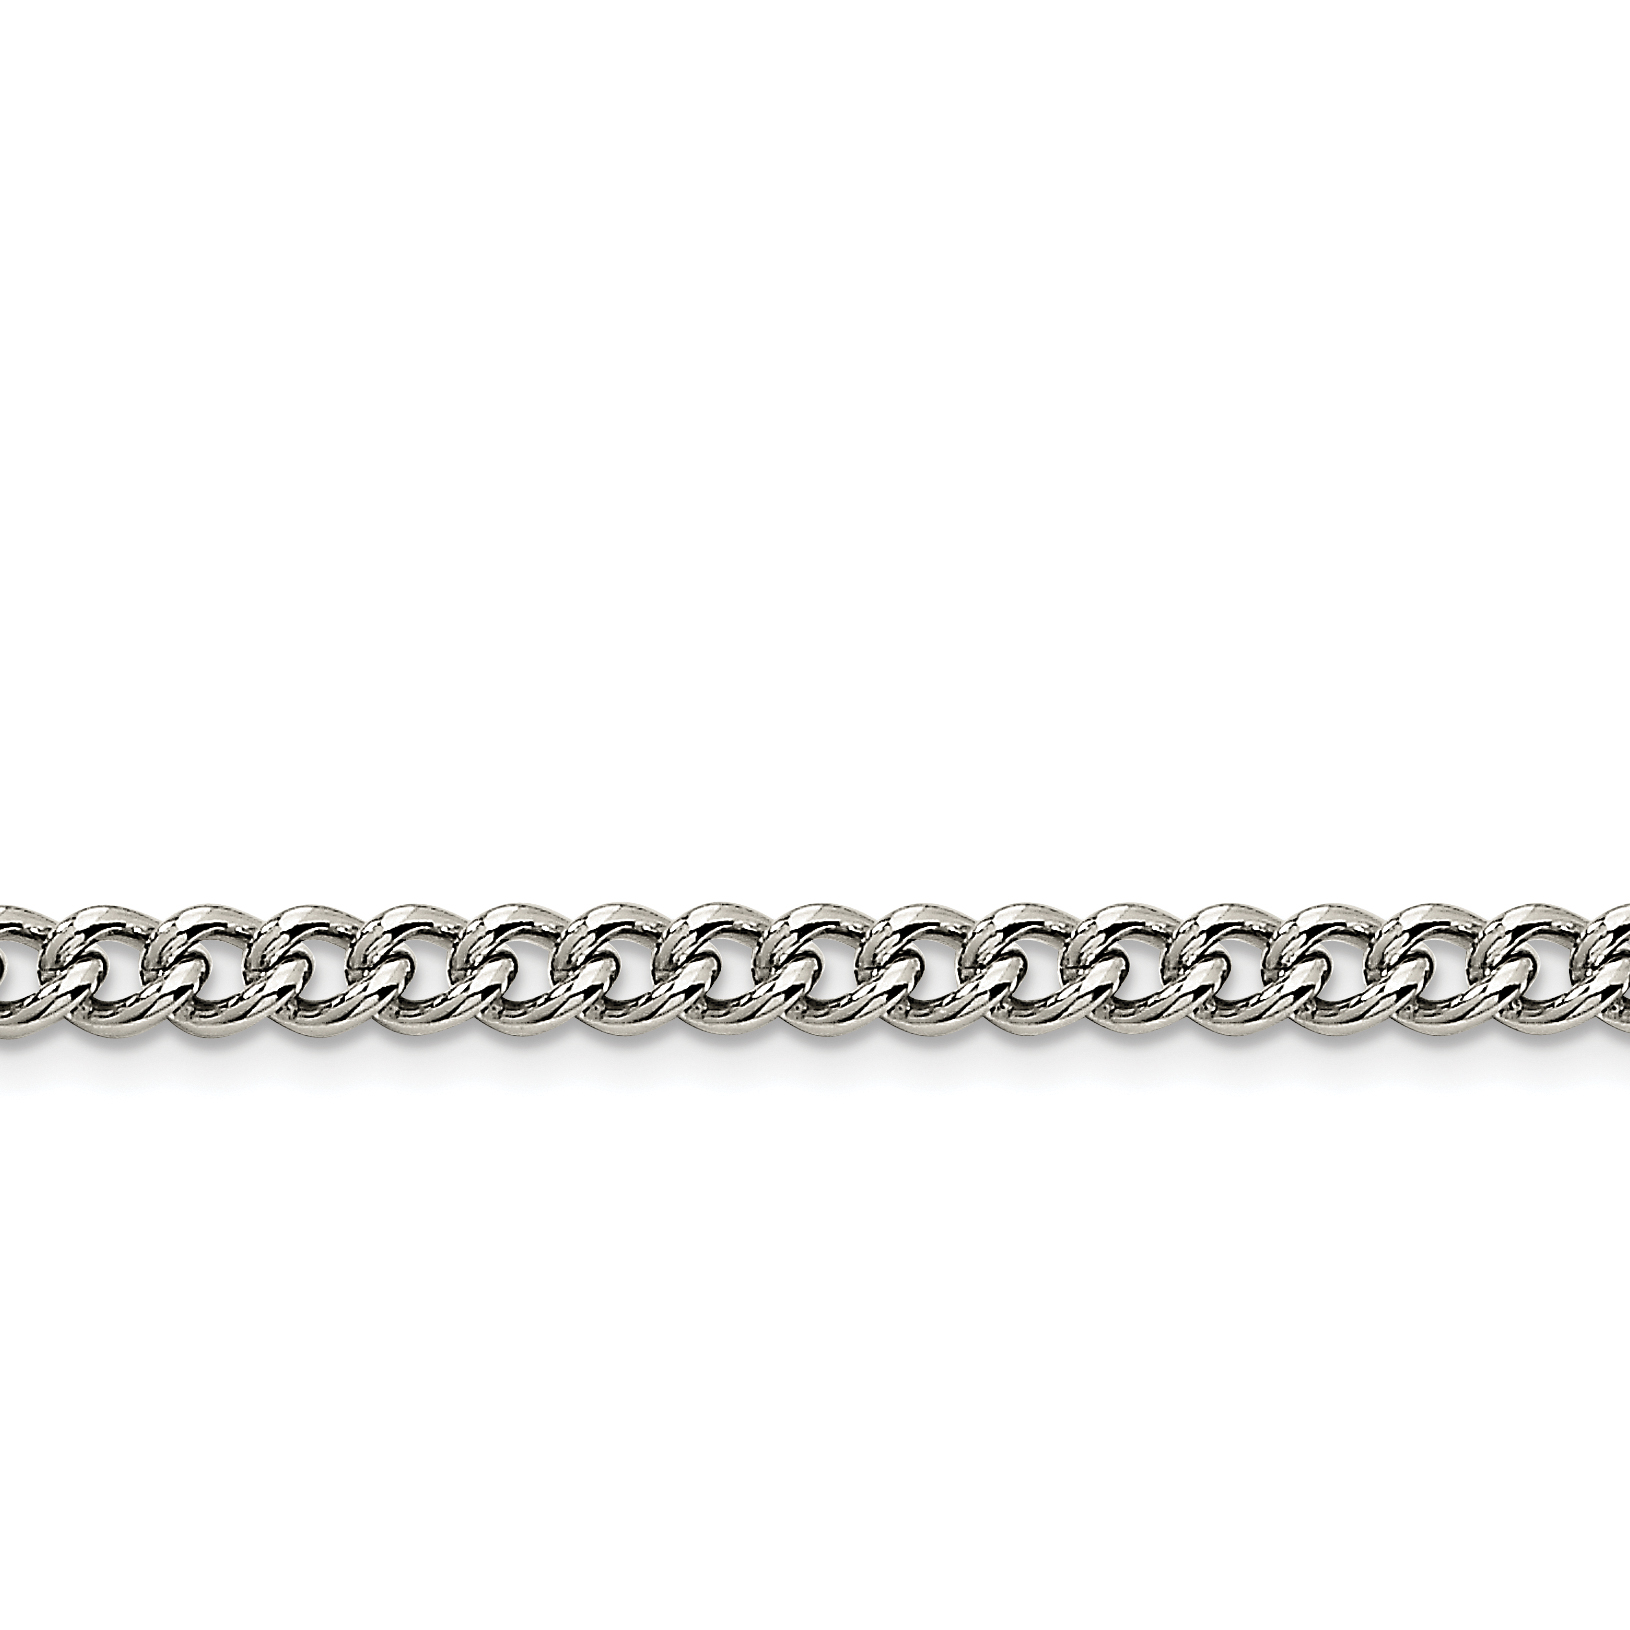 Stainless Steel 5.3mm 18 Inch Round Link Curb Chain Necklace Pendant Charm Rounded Fashion Jewelry Gifts For Women For Her - image 3 de 3